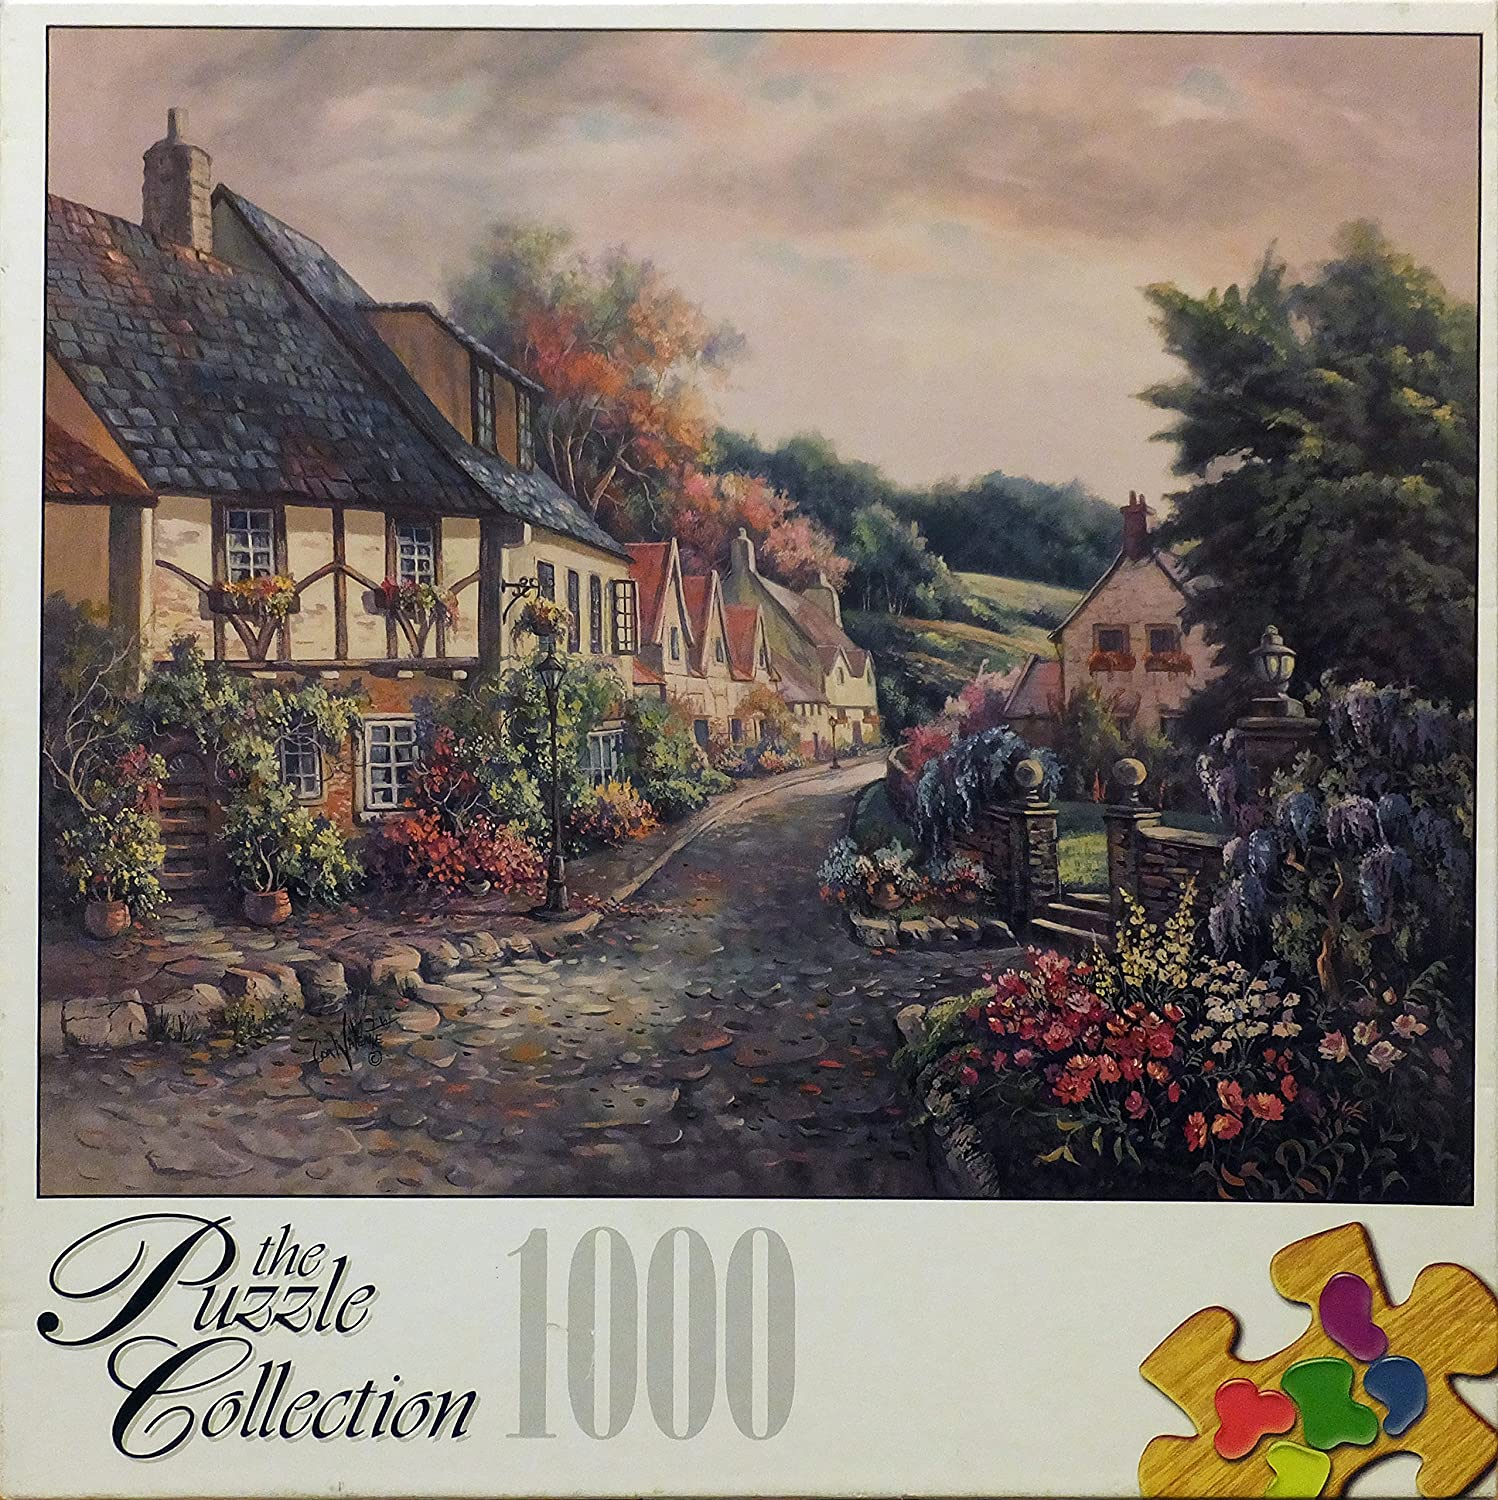 The Puzzle Collection 1000 Piece Puzzle 18 15//16 X 26 3//4 Castlecombe